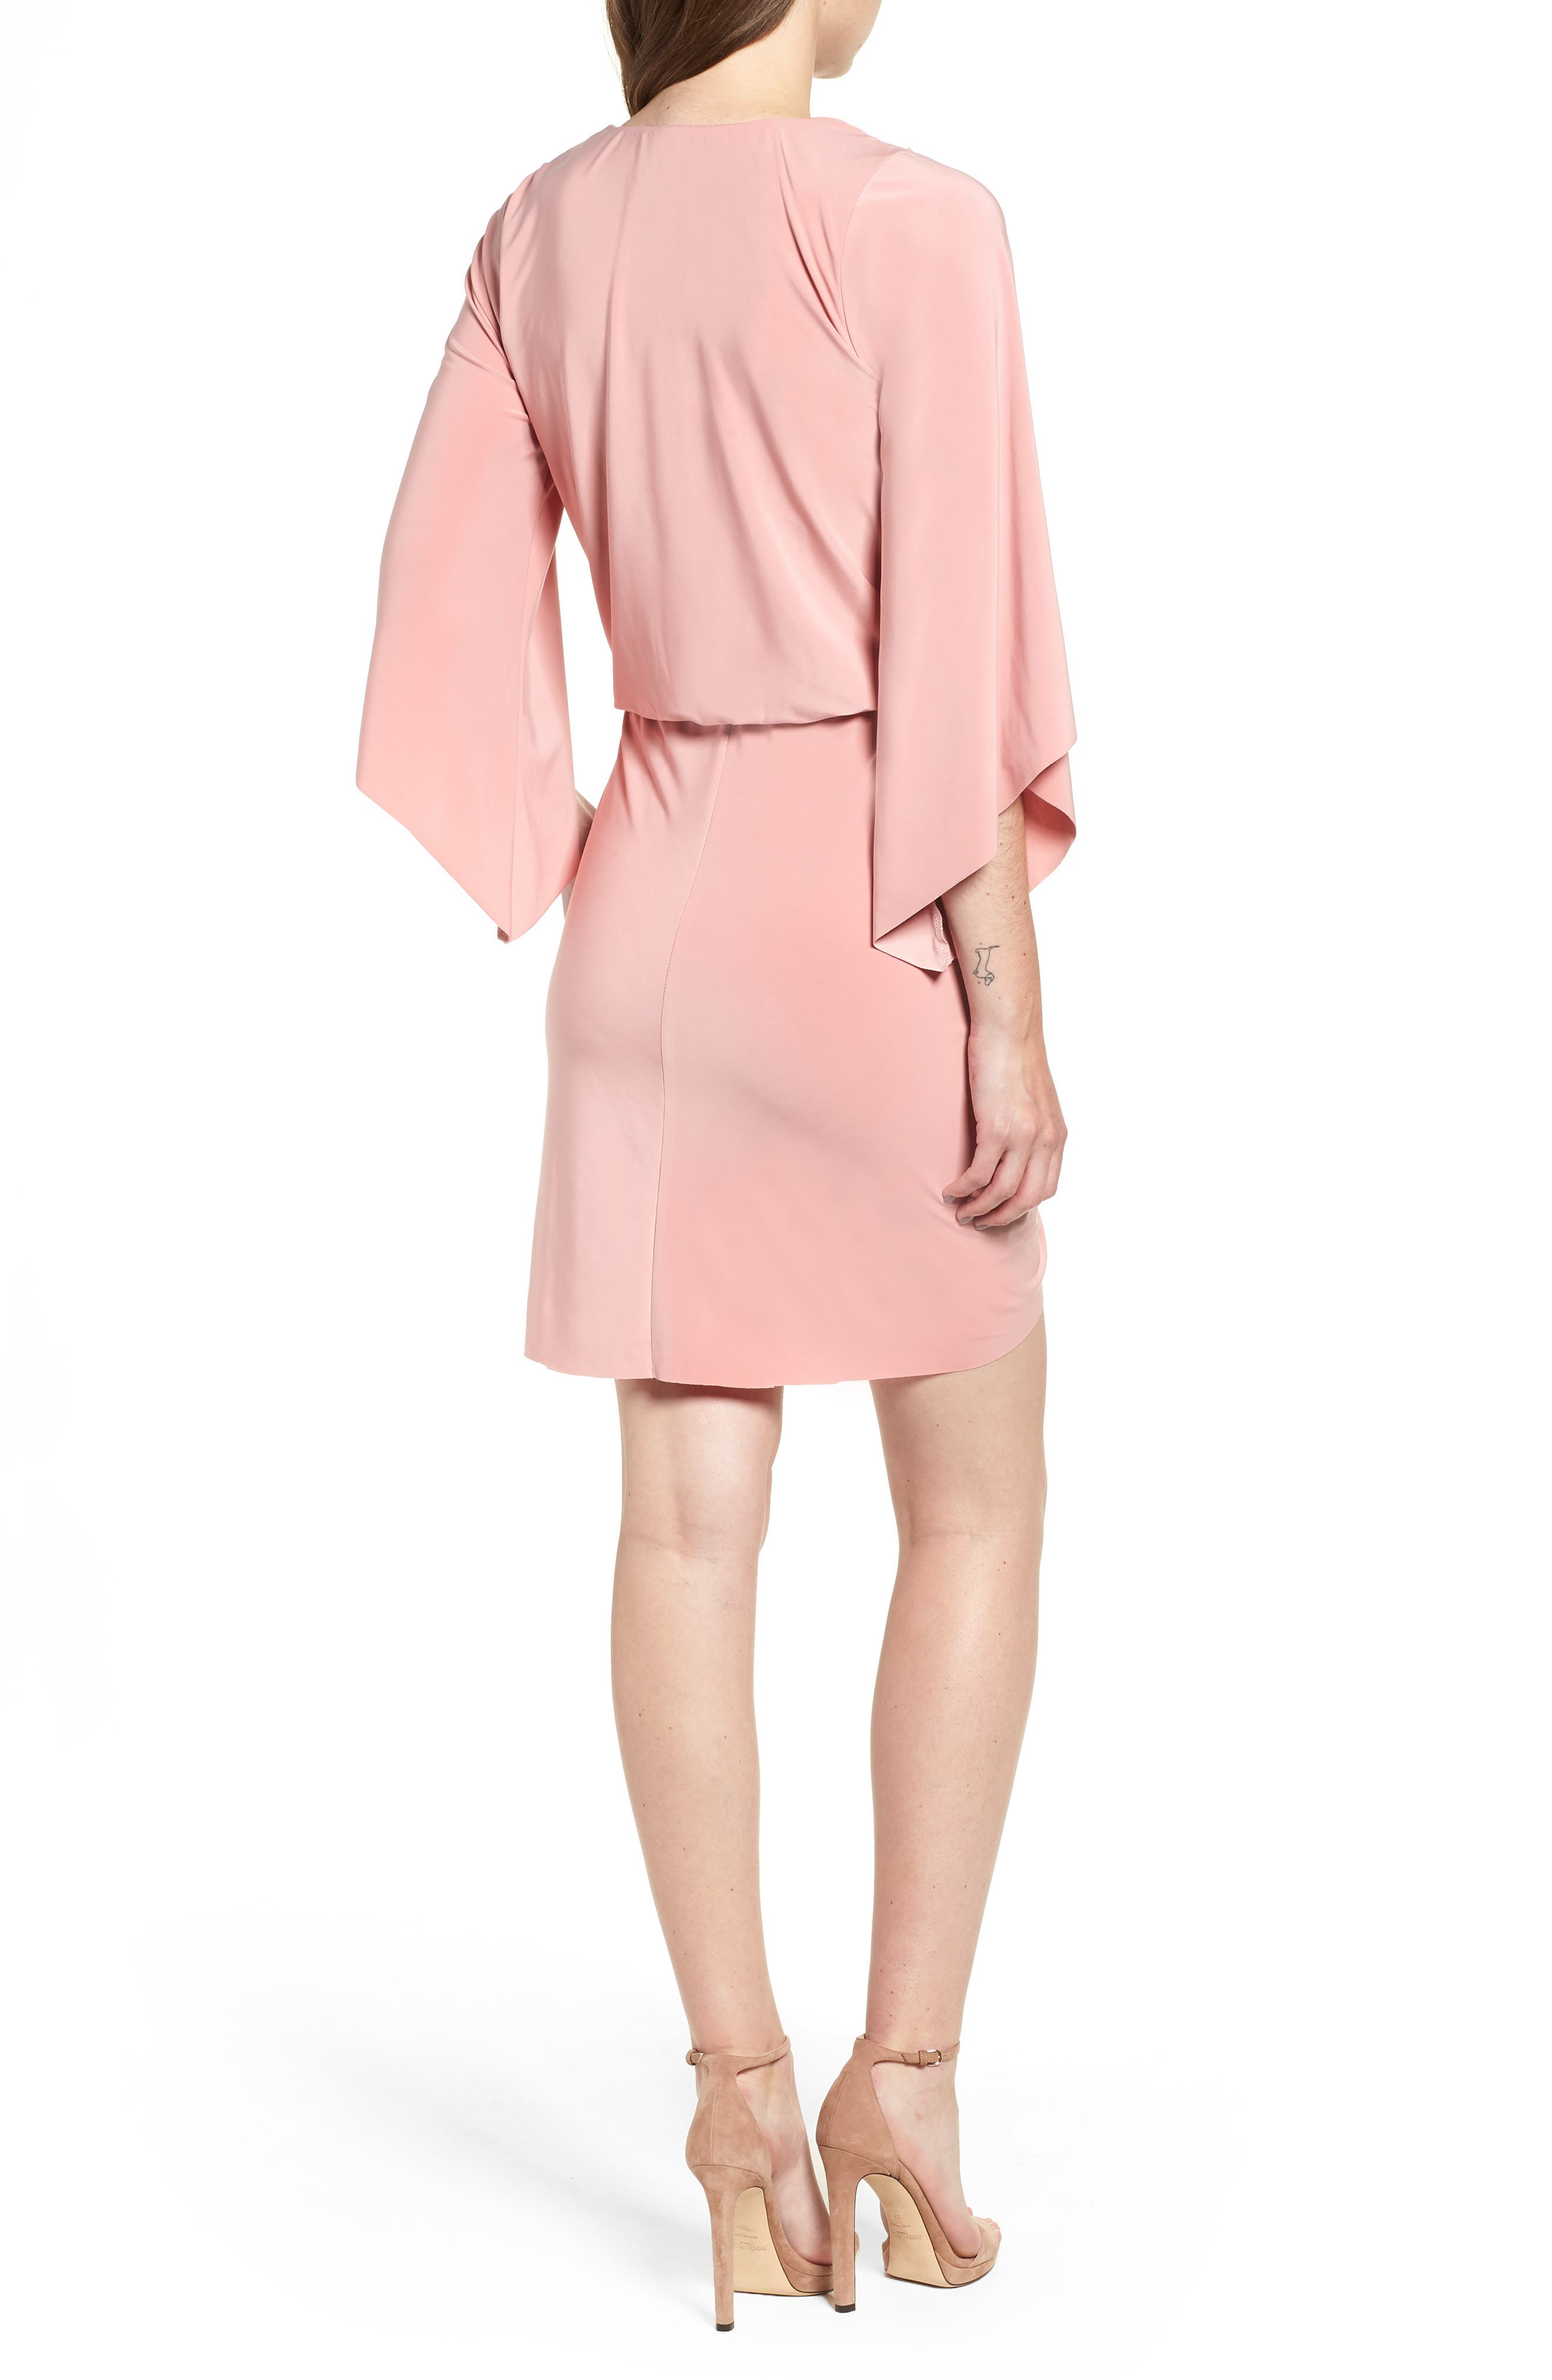 Teget Knot Front Dress,                             Alternate thumbnail 2, color,                             Dusty Rose